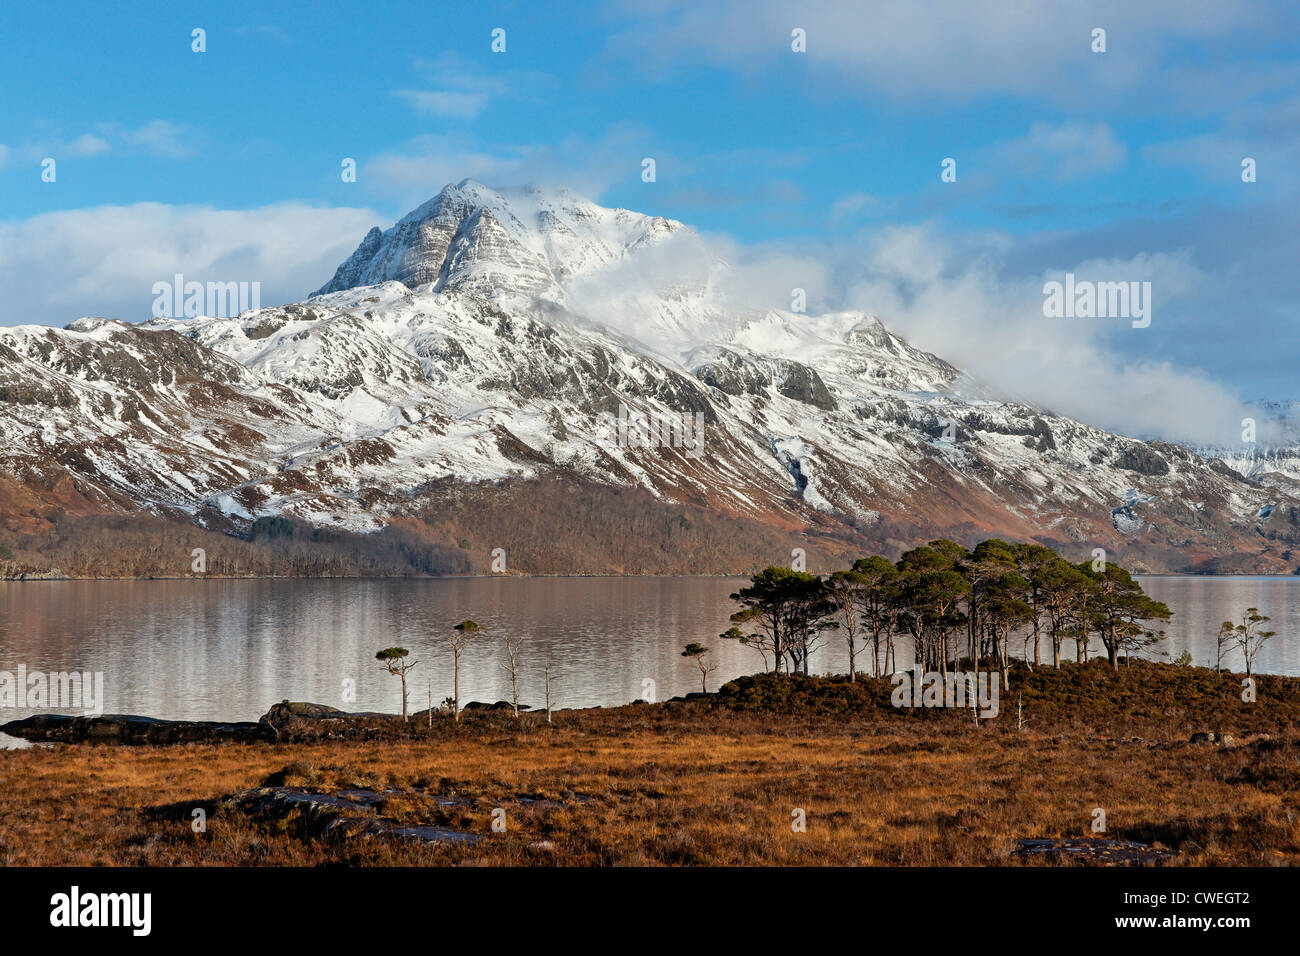 The mountain Slioch and Loch Maree, Wester Ross, Highland, Scotland, UK. - Stock Image